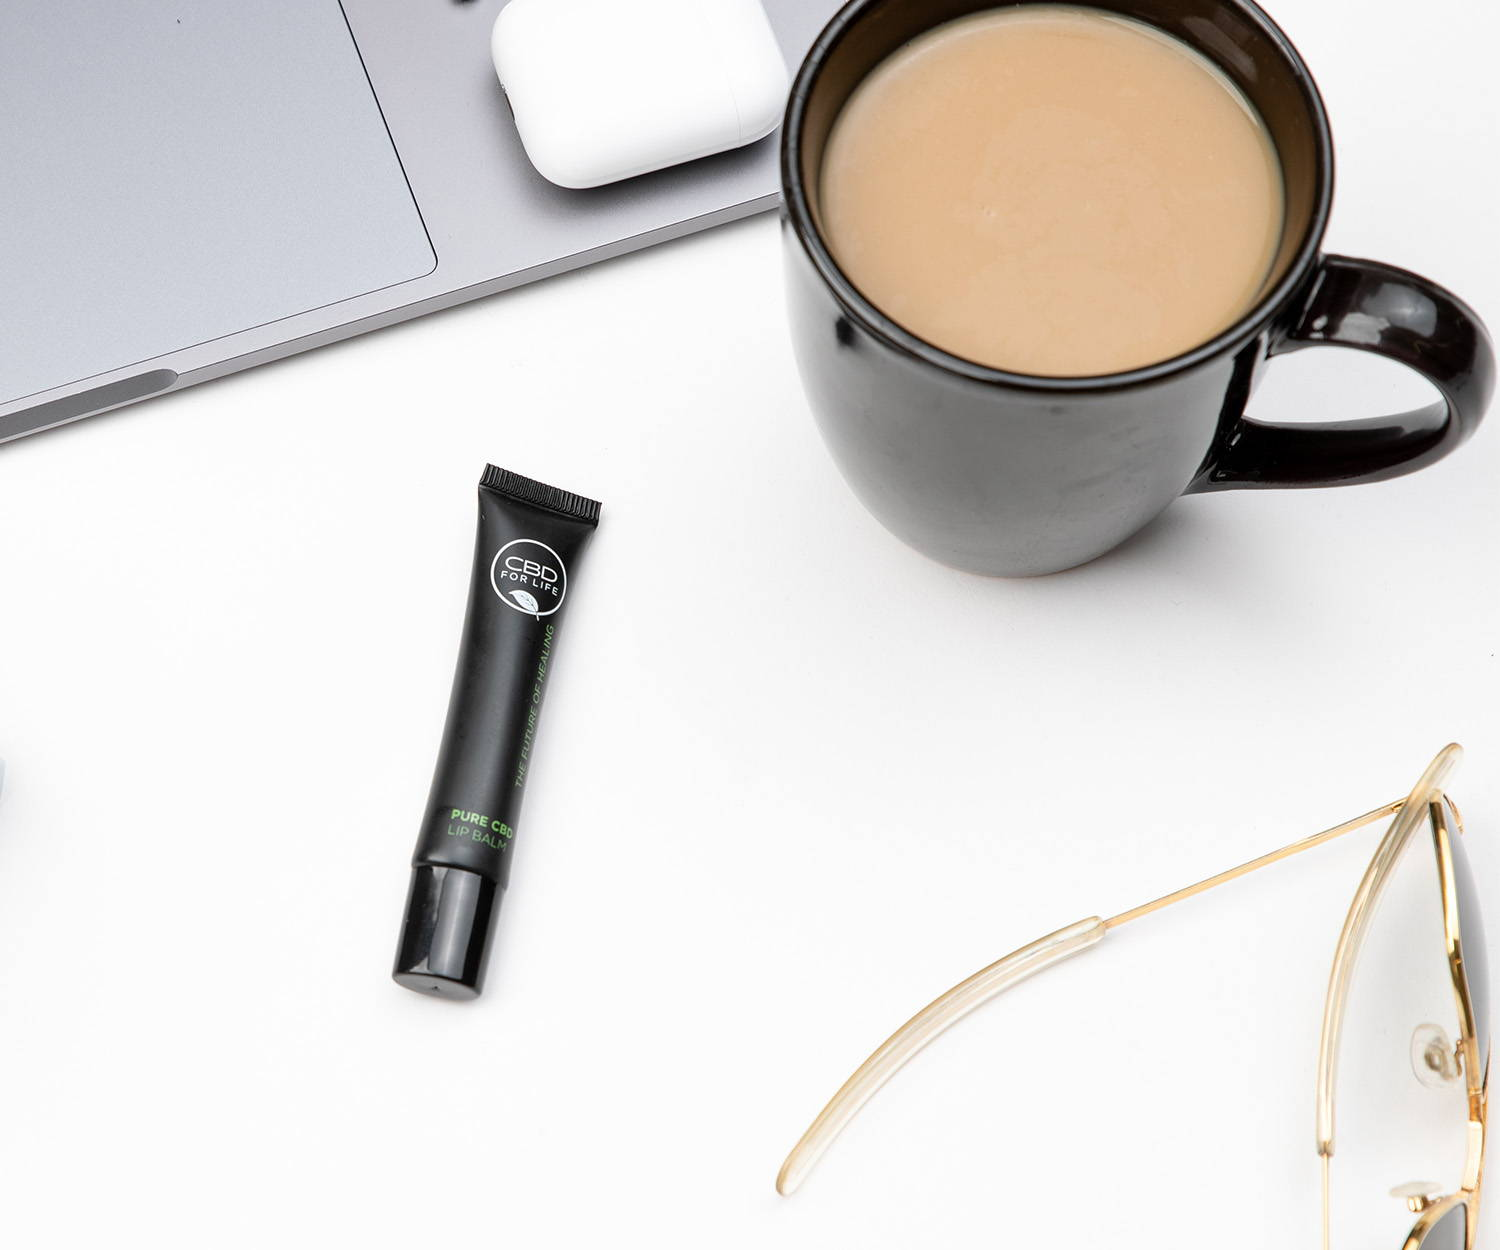 CBD Lip Balm by CBD For Life. Take care of your lips with CBD.